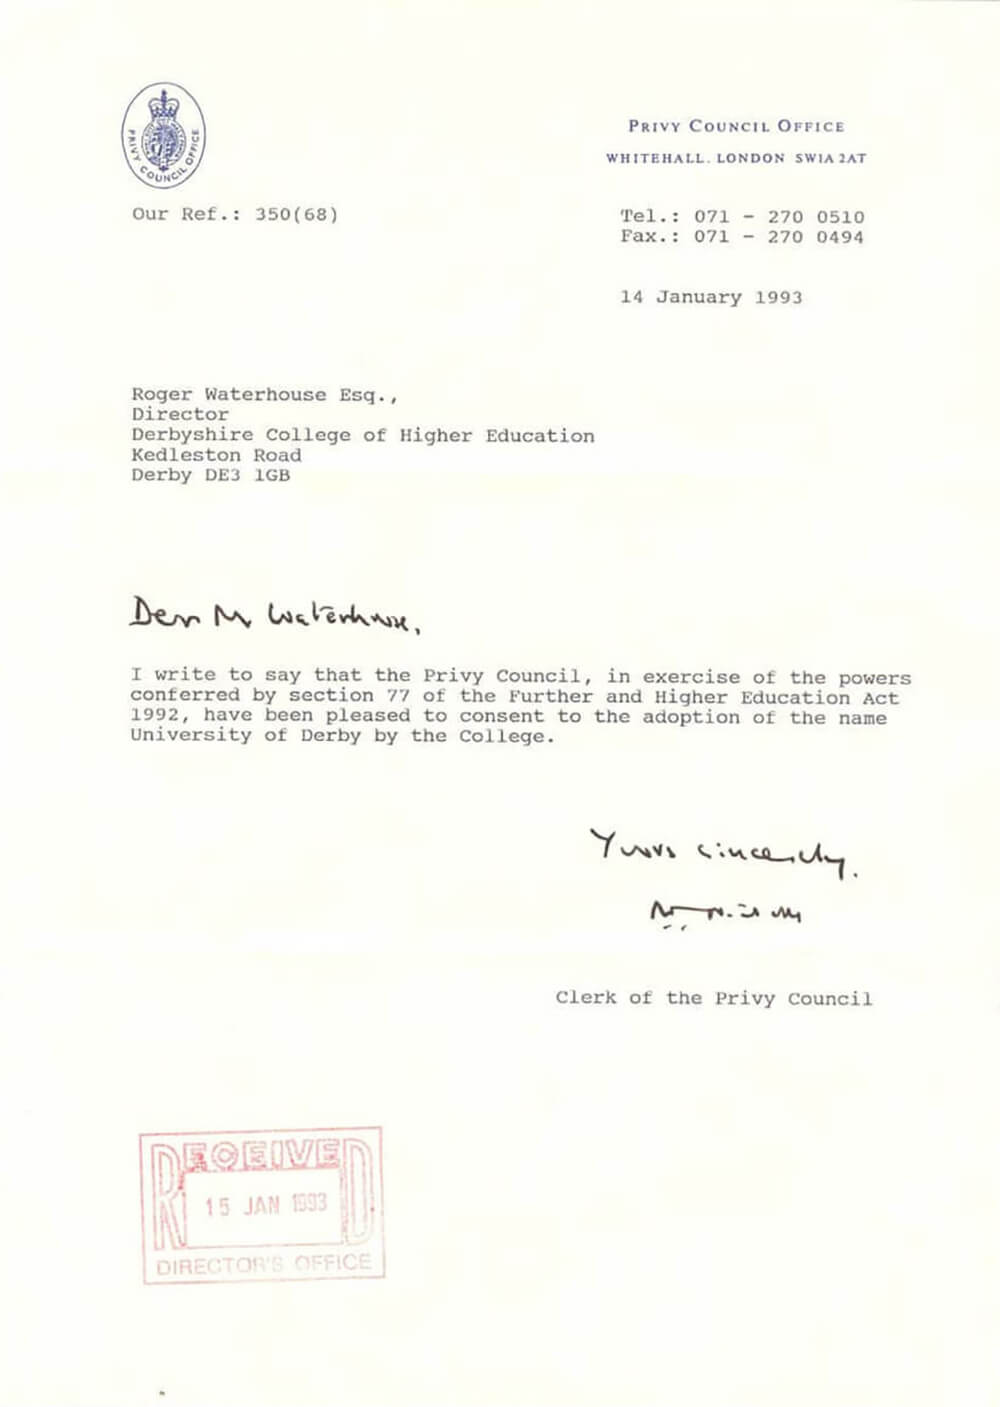 Letter from the Privy Council establishing the University of Derby